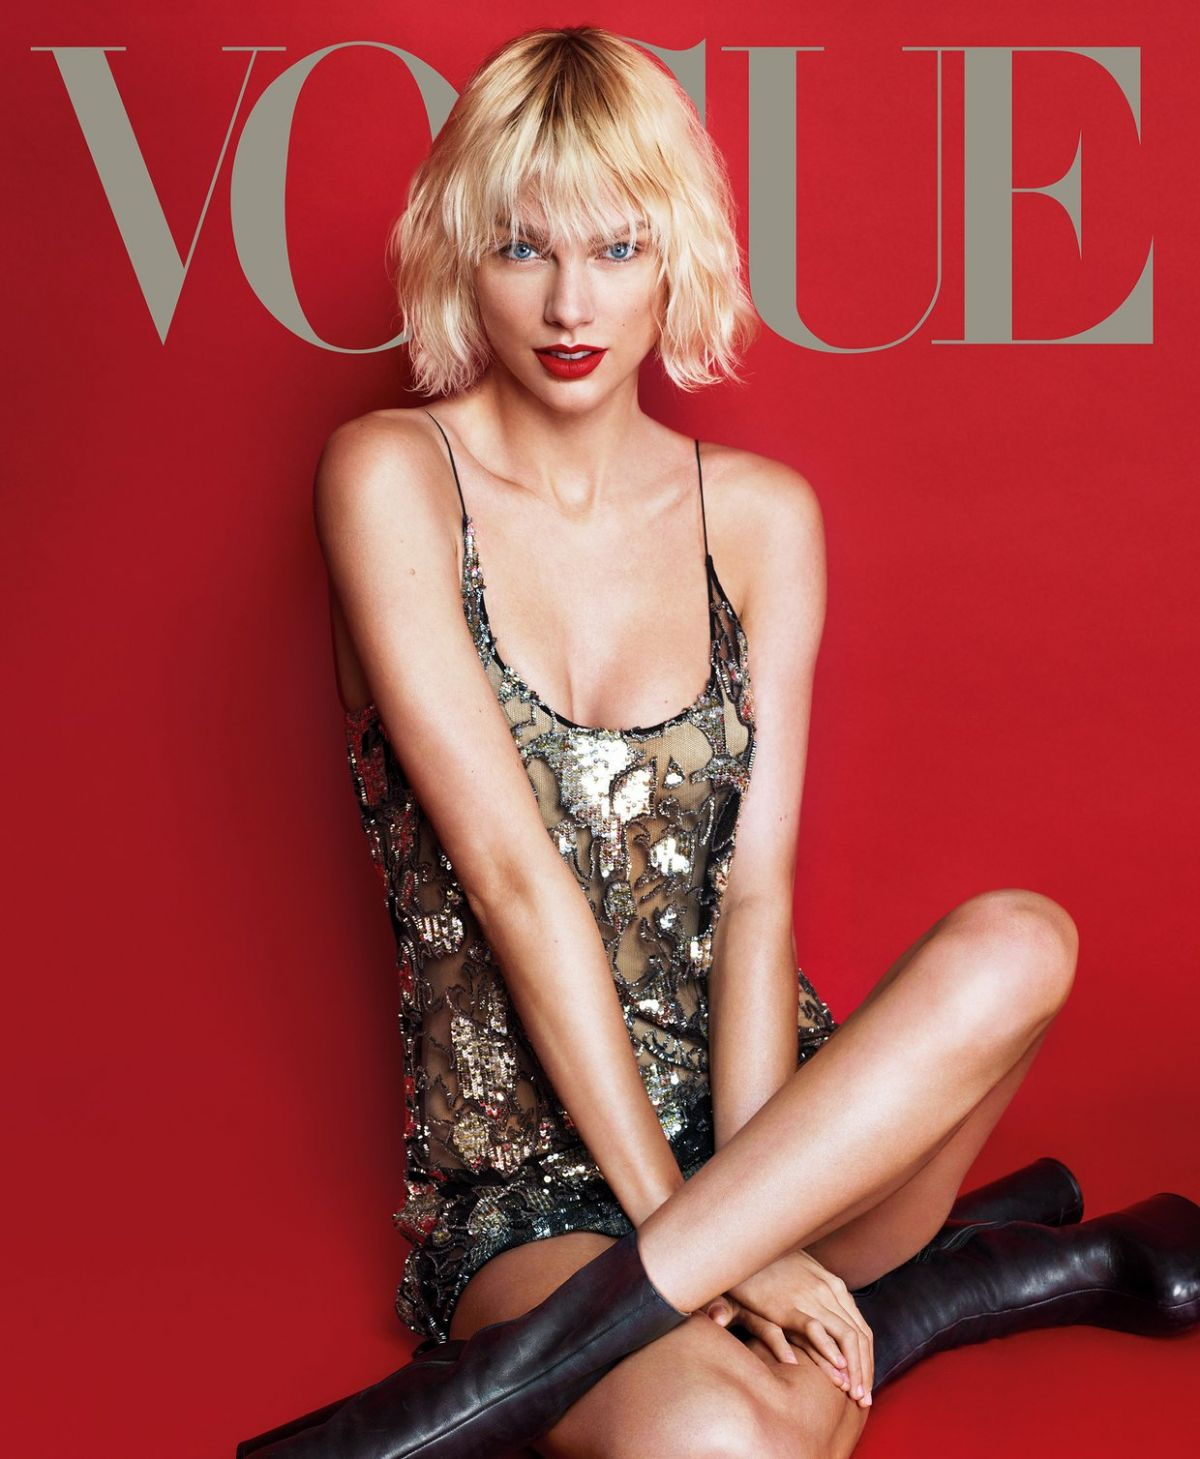 TAYLOR SWIFT in Vogue Magazine, May 2016 Issue